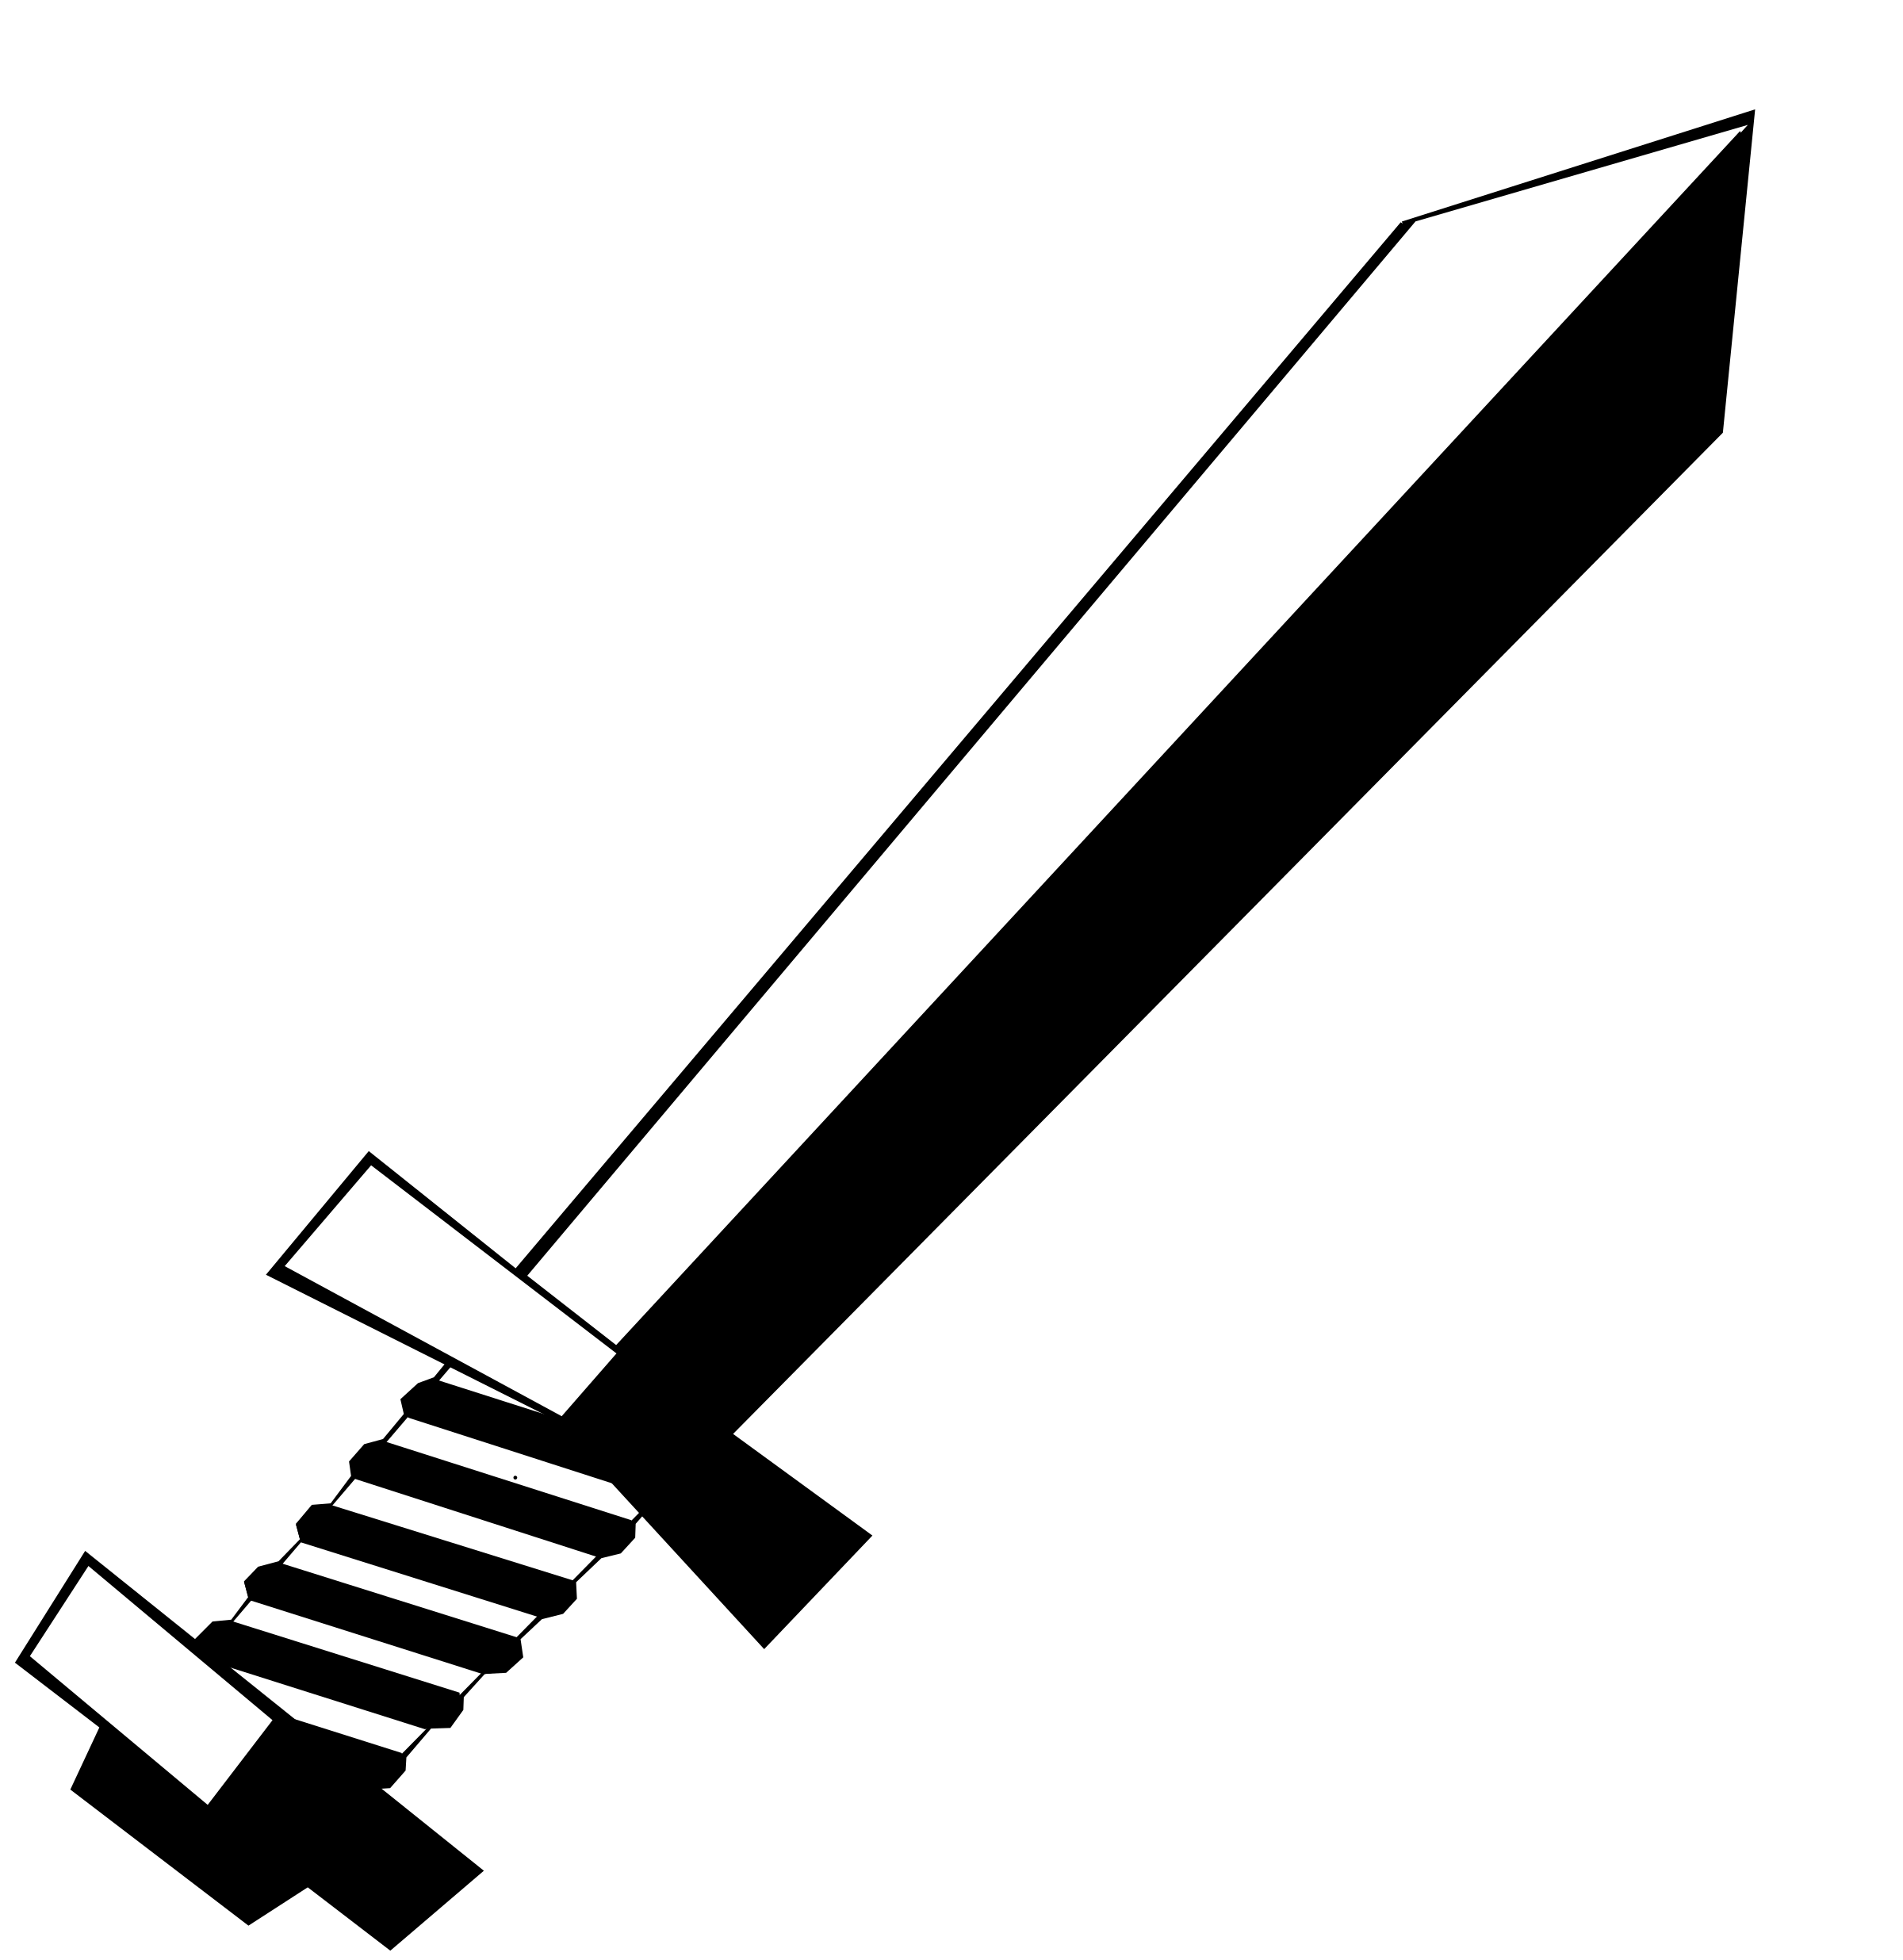 Sword clipart black and white 2 » Clipart Station.